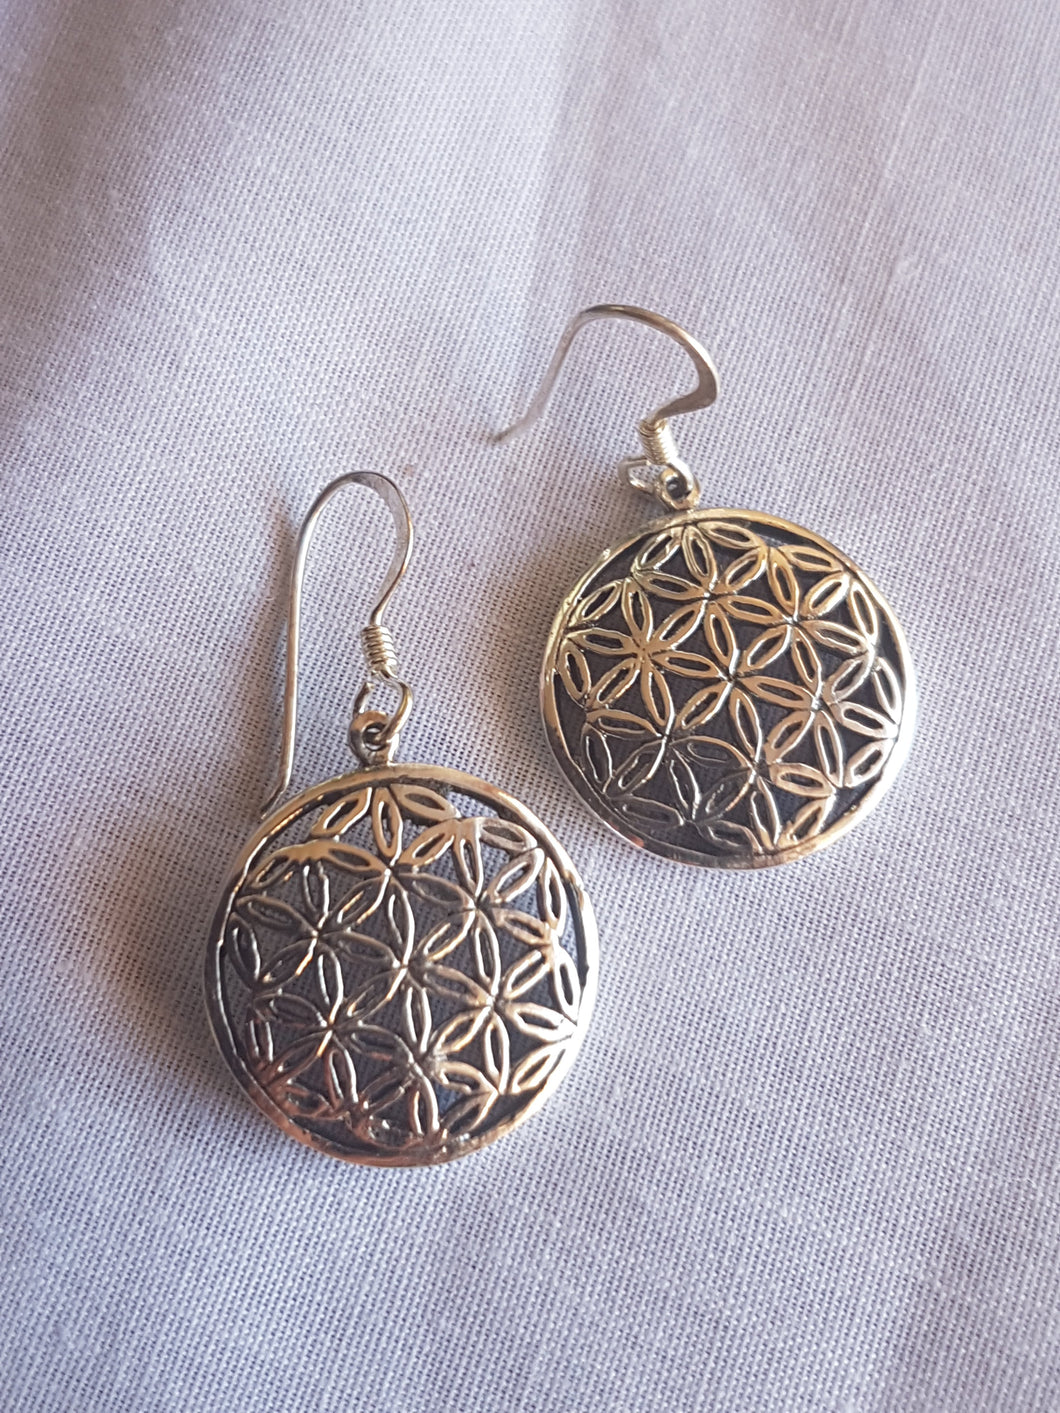 Silver Flower of life earrings - Nature's Magick